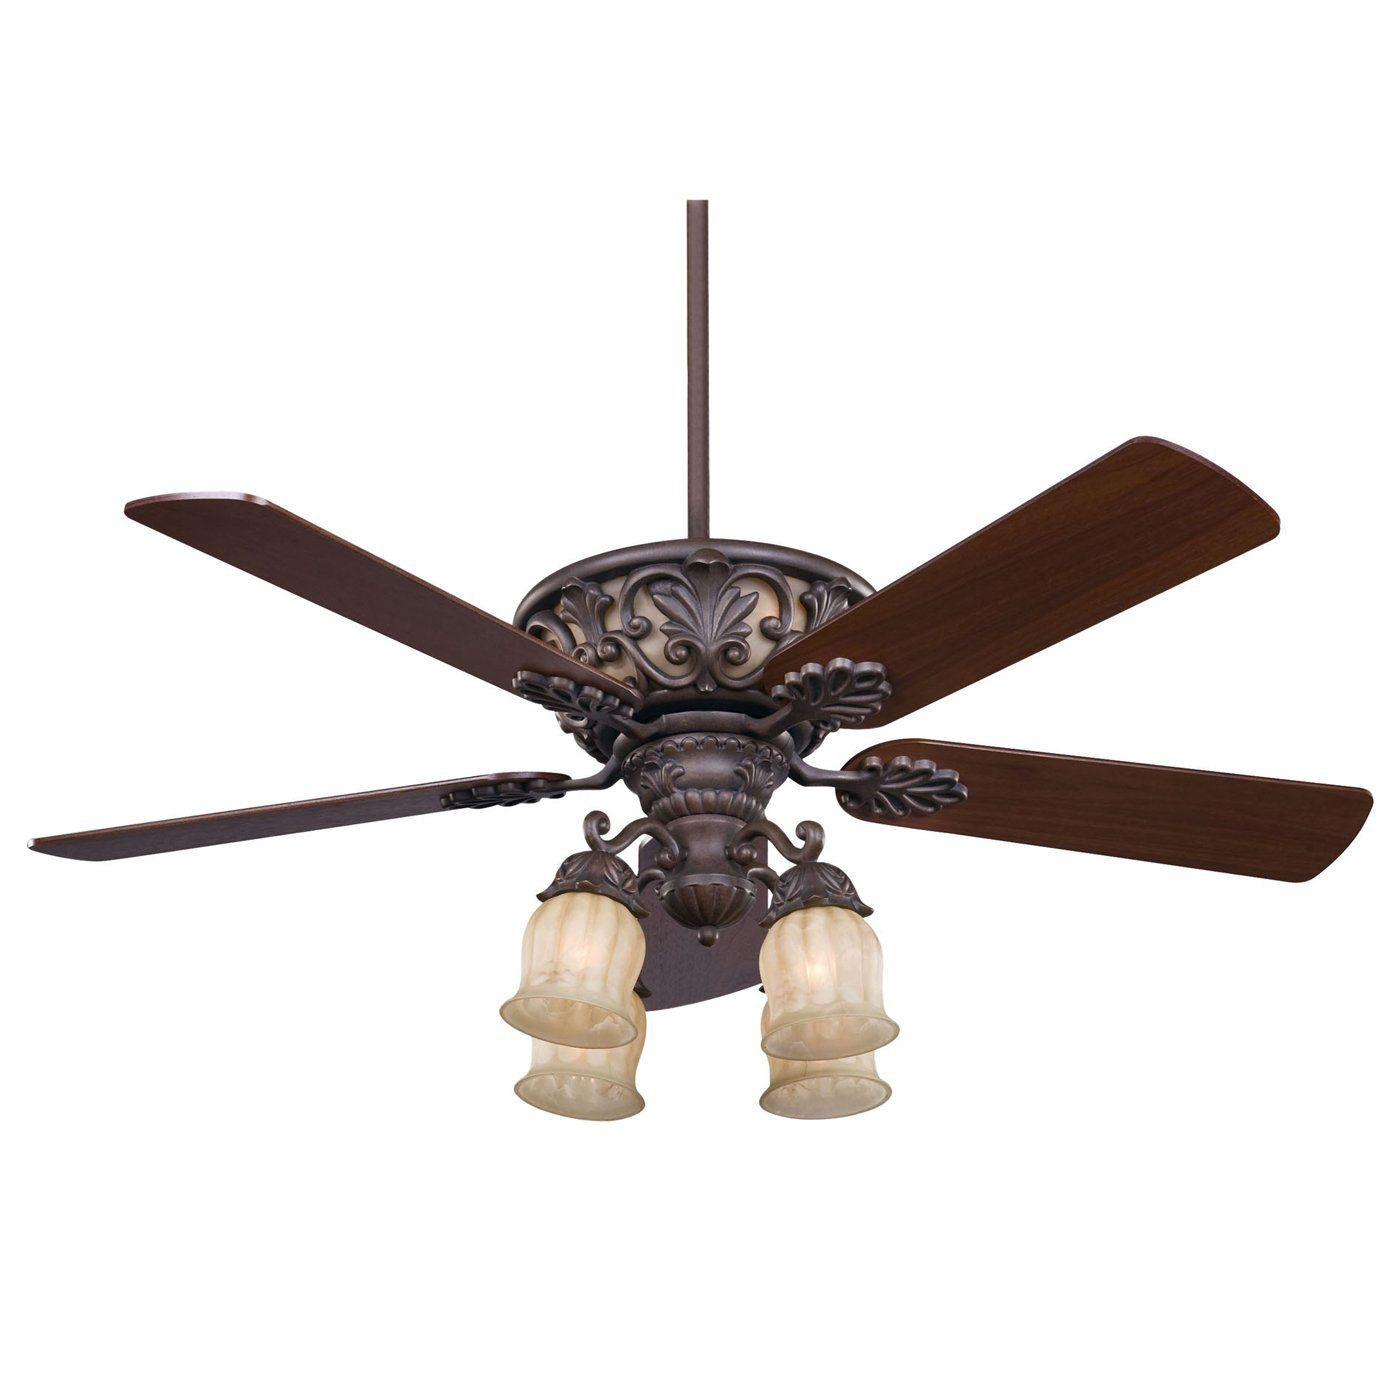 Shop Savoy House 52 810 5 8 Light 52 in Monarch Ceiling Fan at ATG